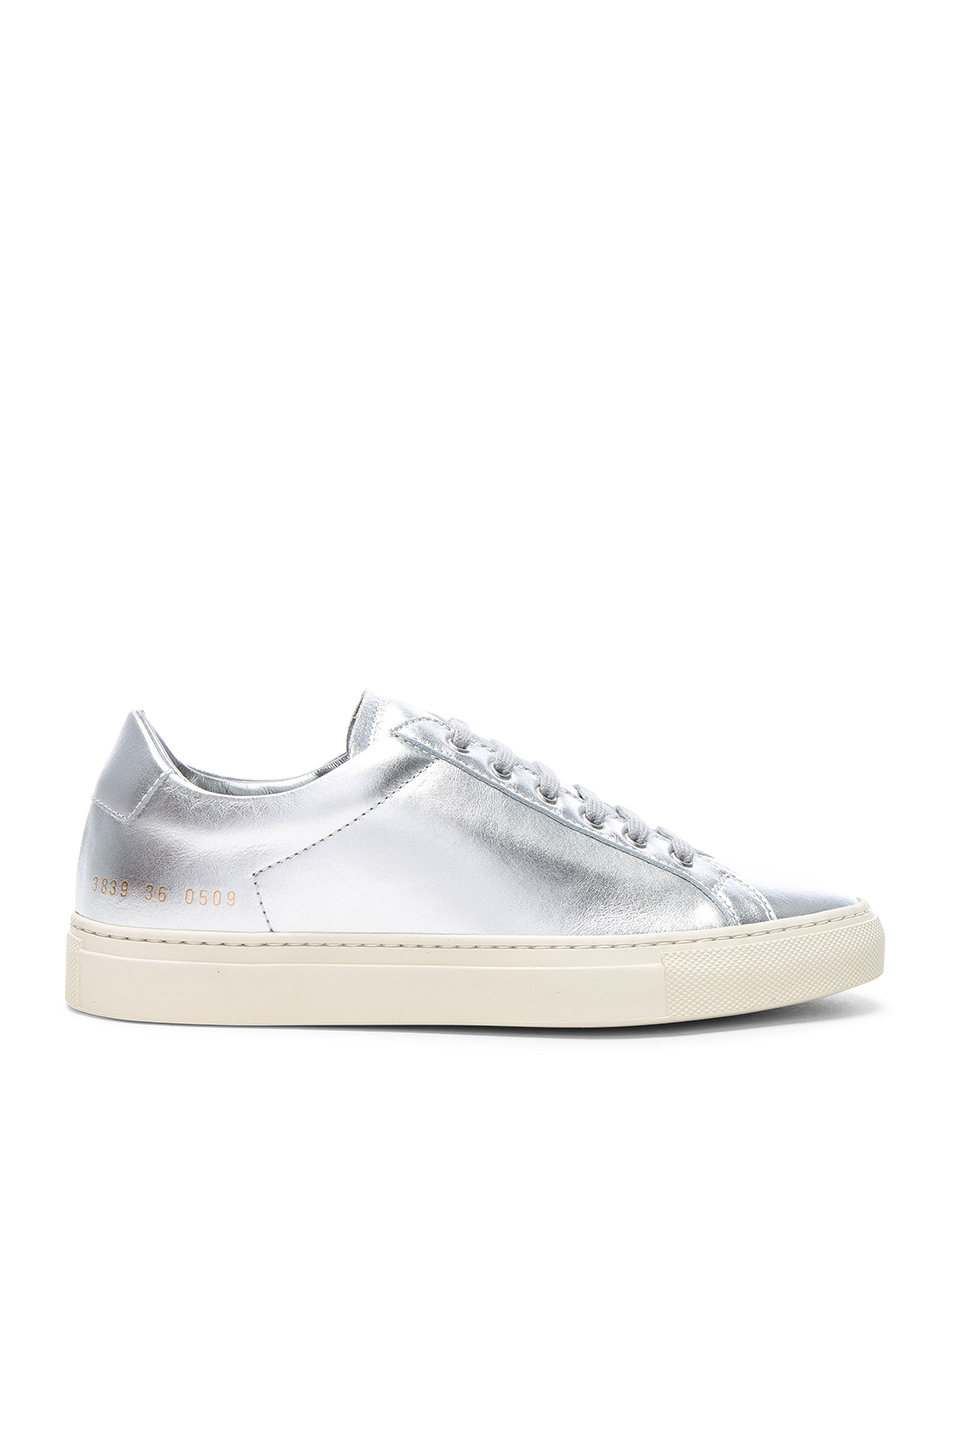 574f2f262898 Buy Original Common Projects Leather Retro Low Achilles Sneakers at ...